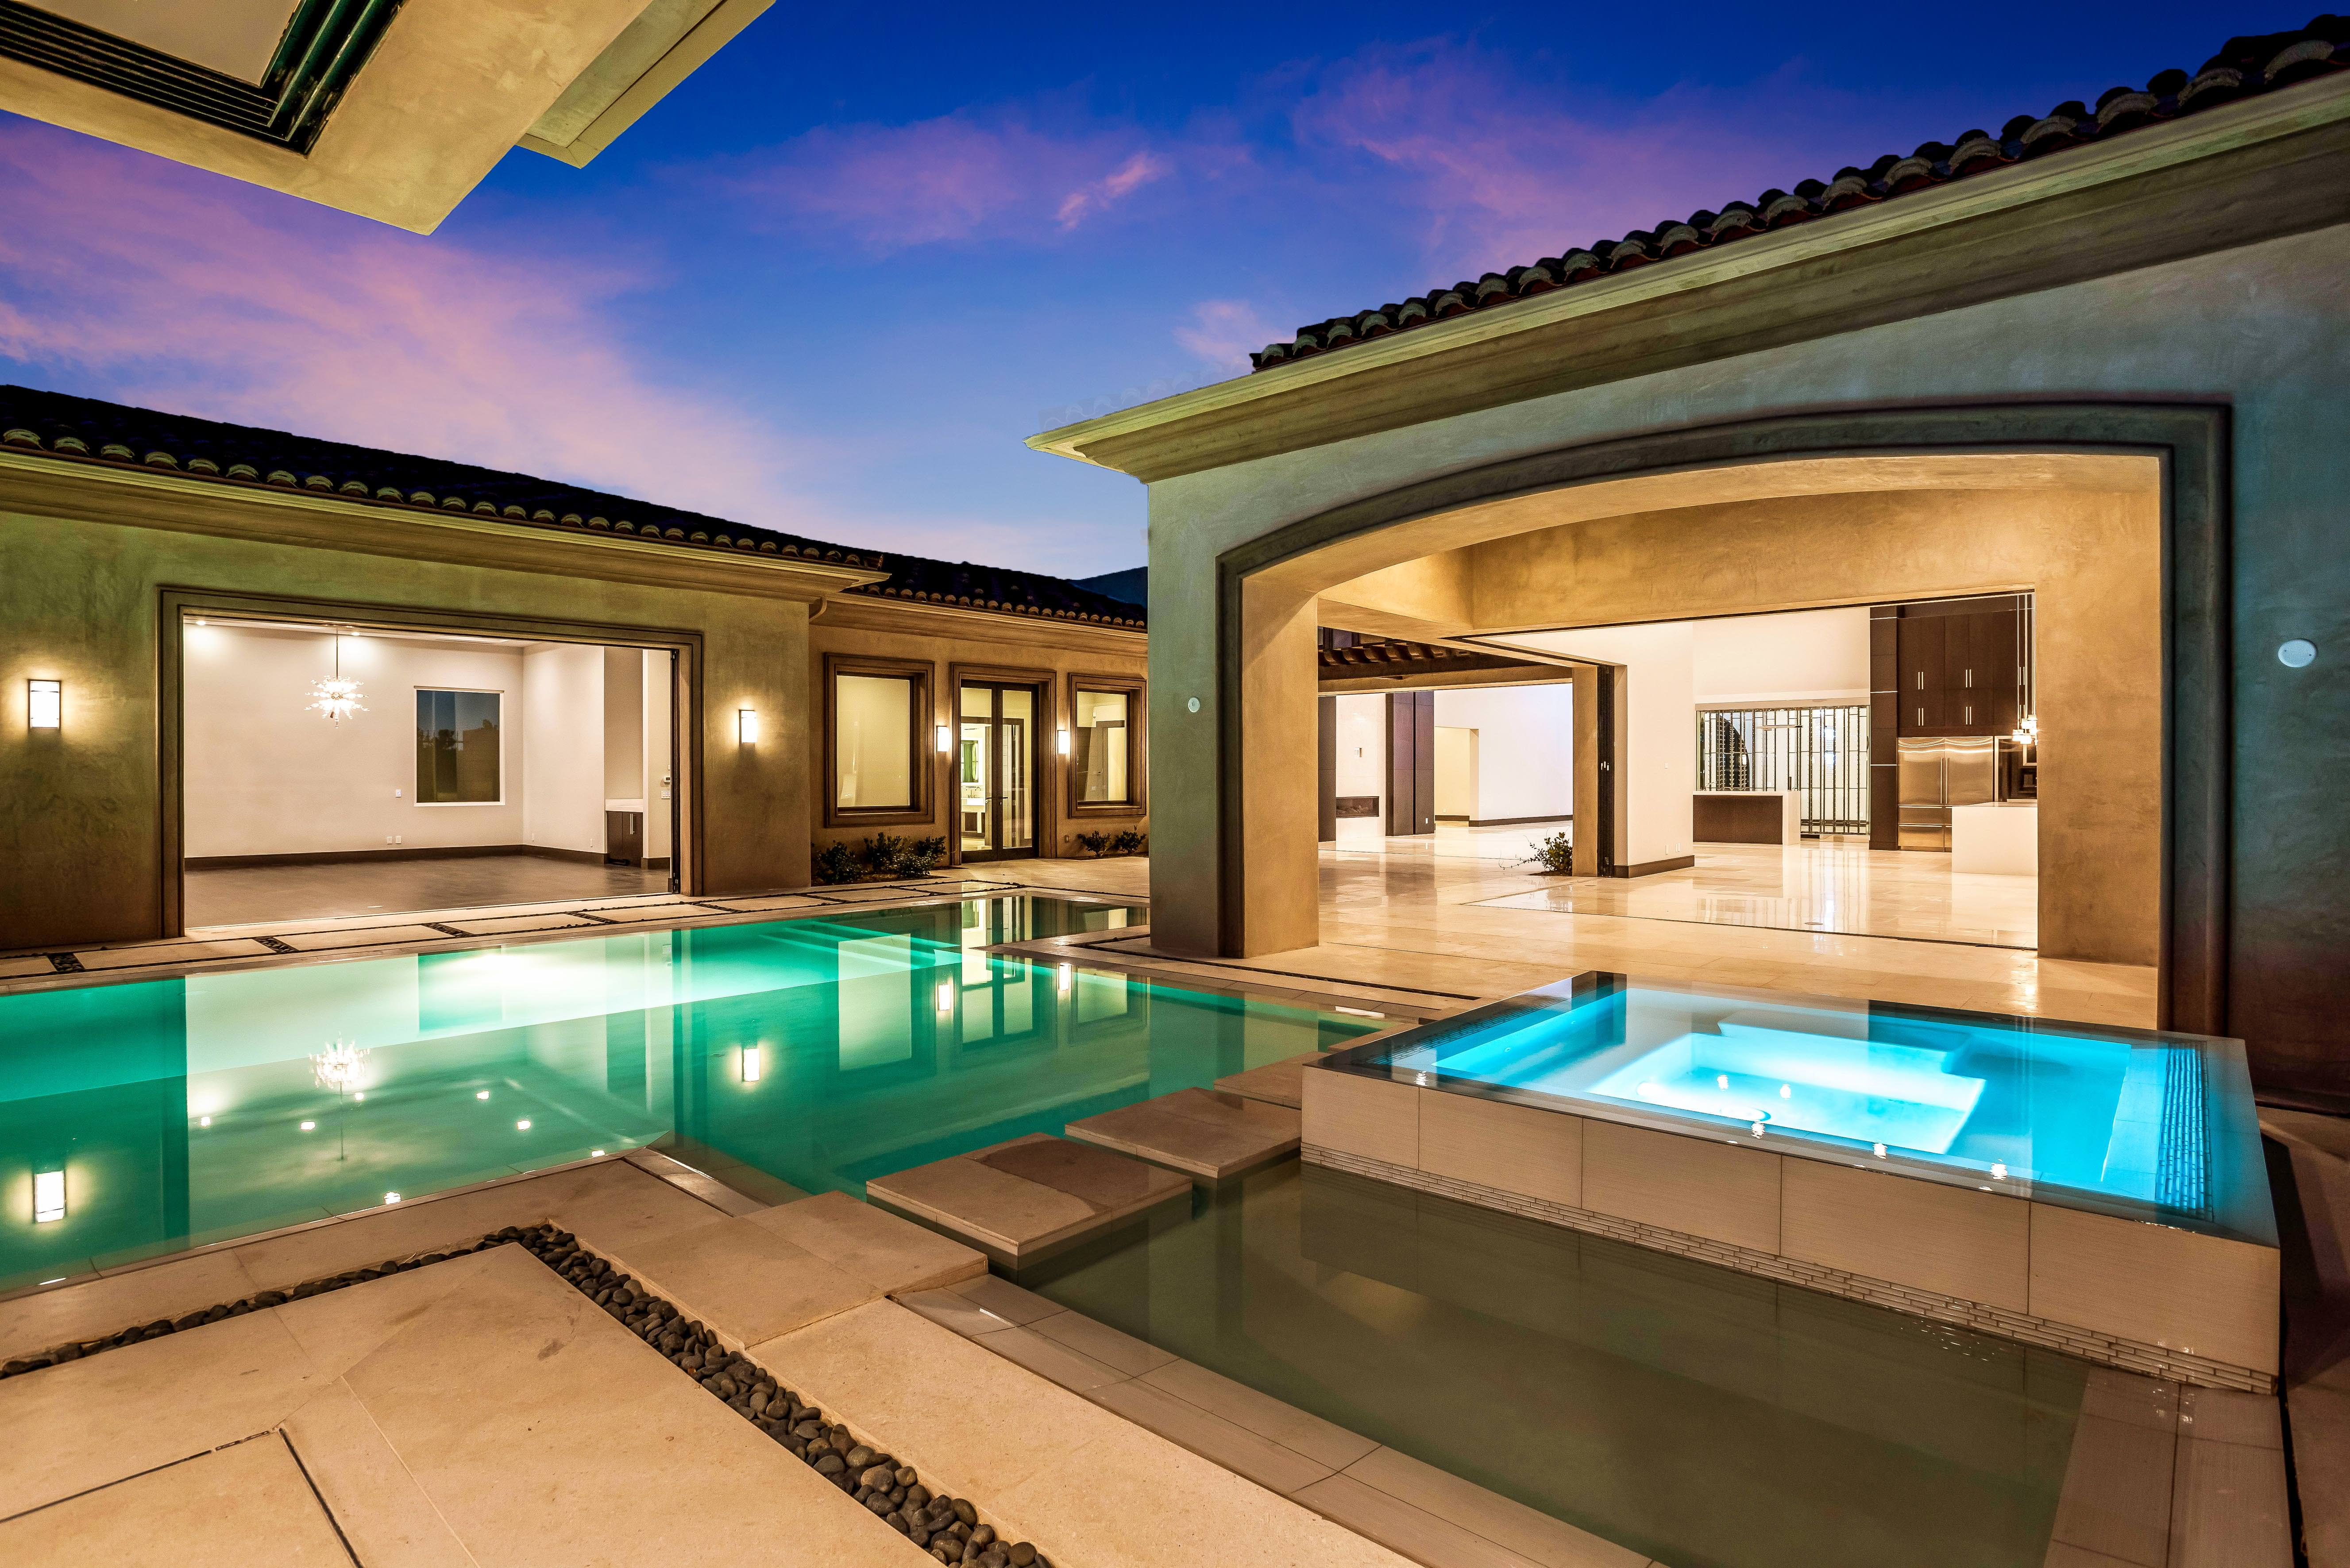 Southern highlands las vegas for Luxury homes las vegas for sale